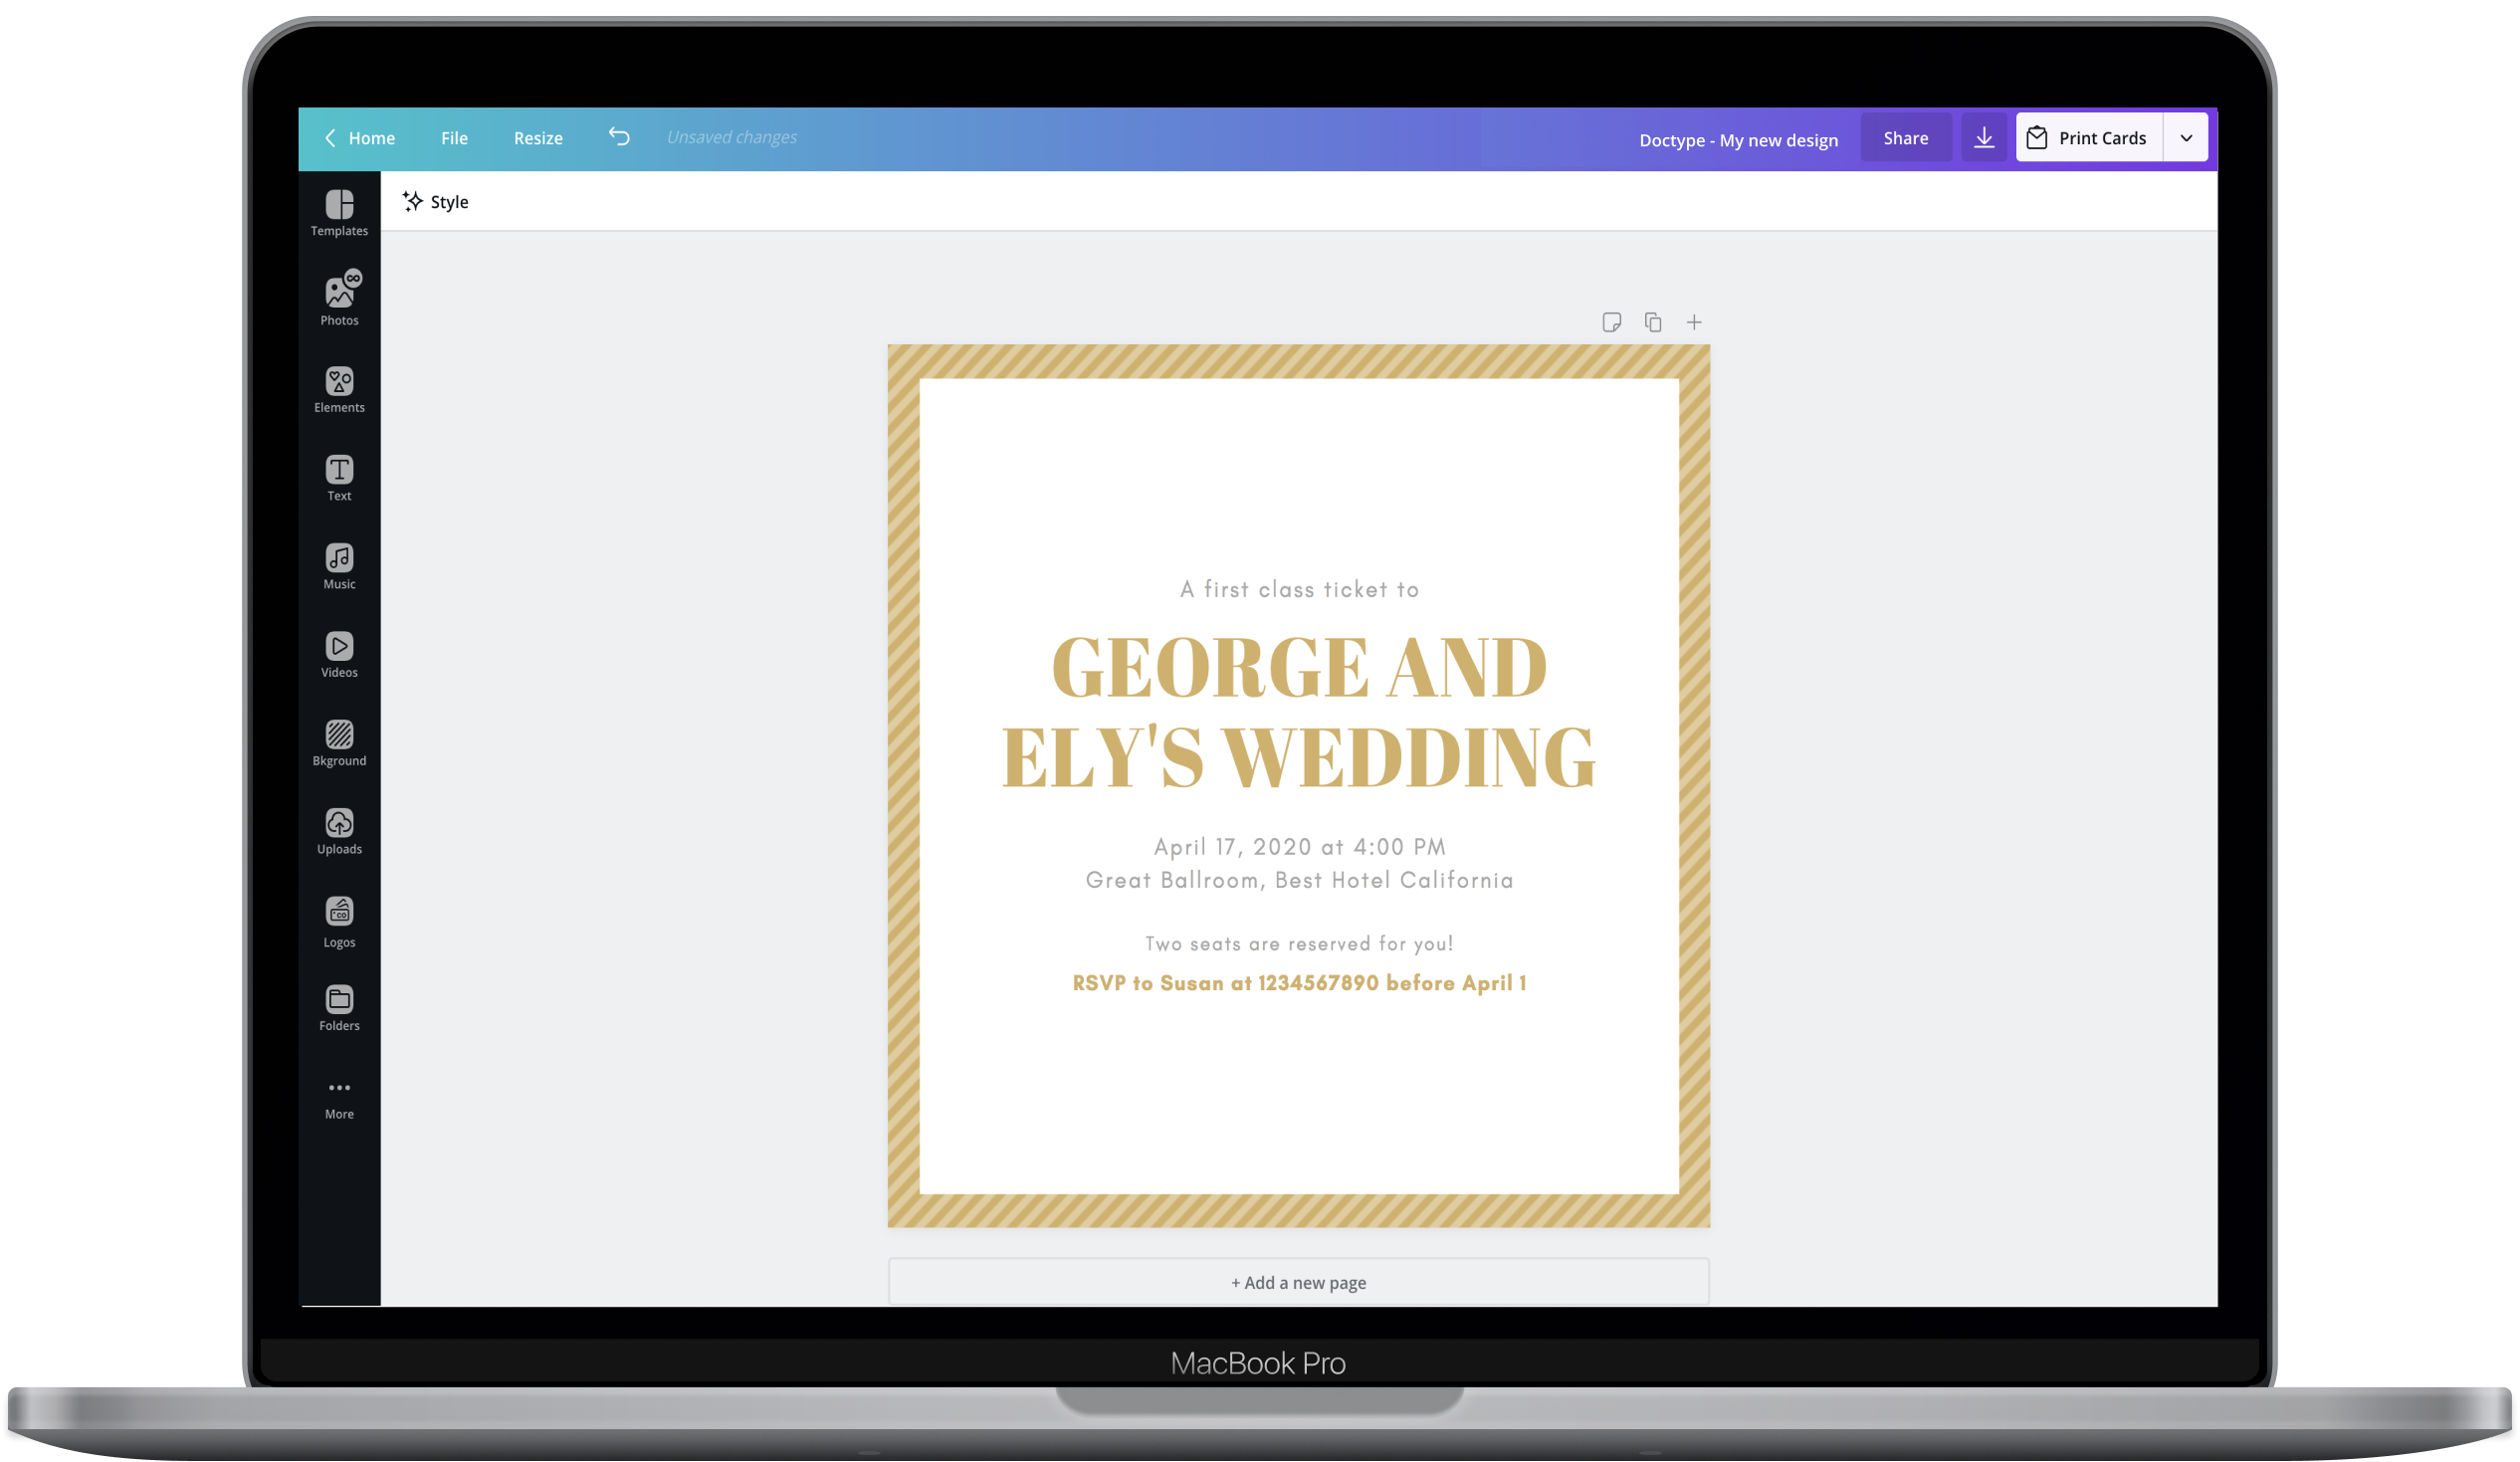 Canva editor showing a wedding invitation